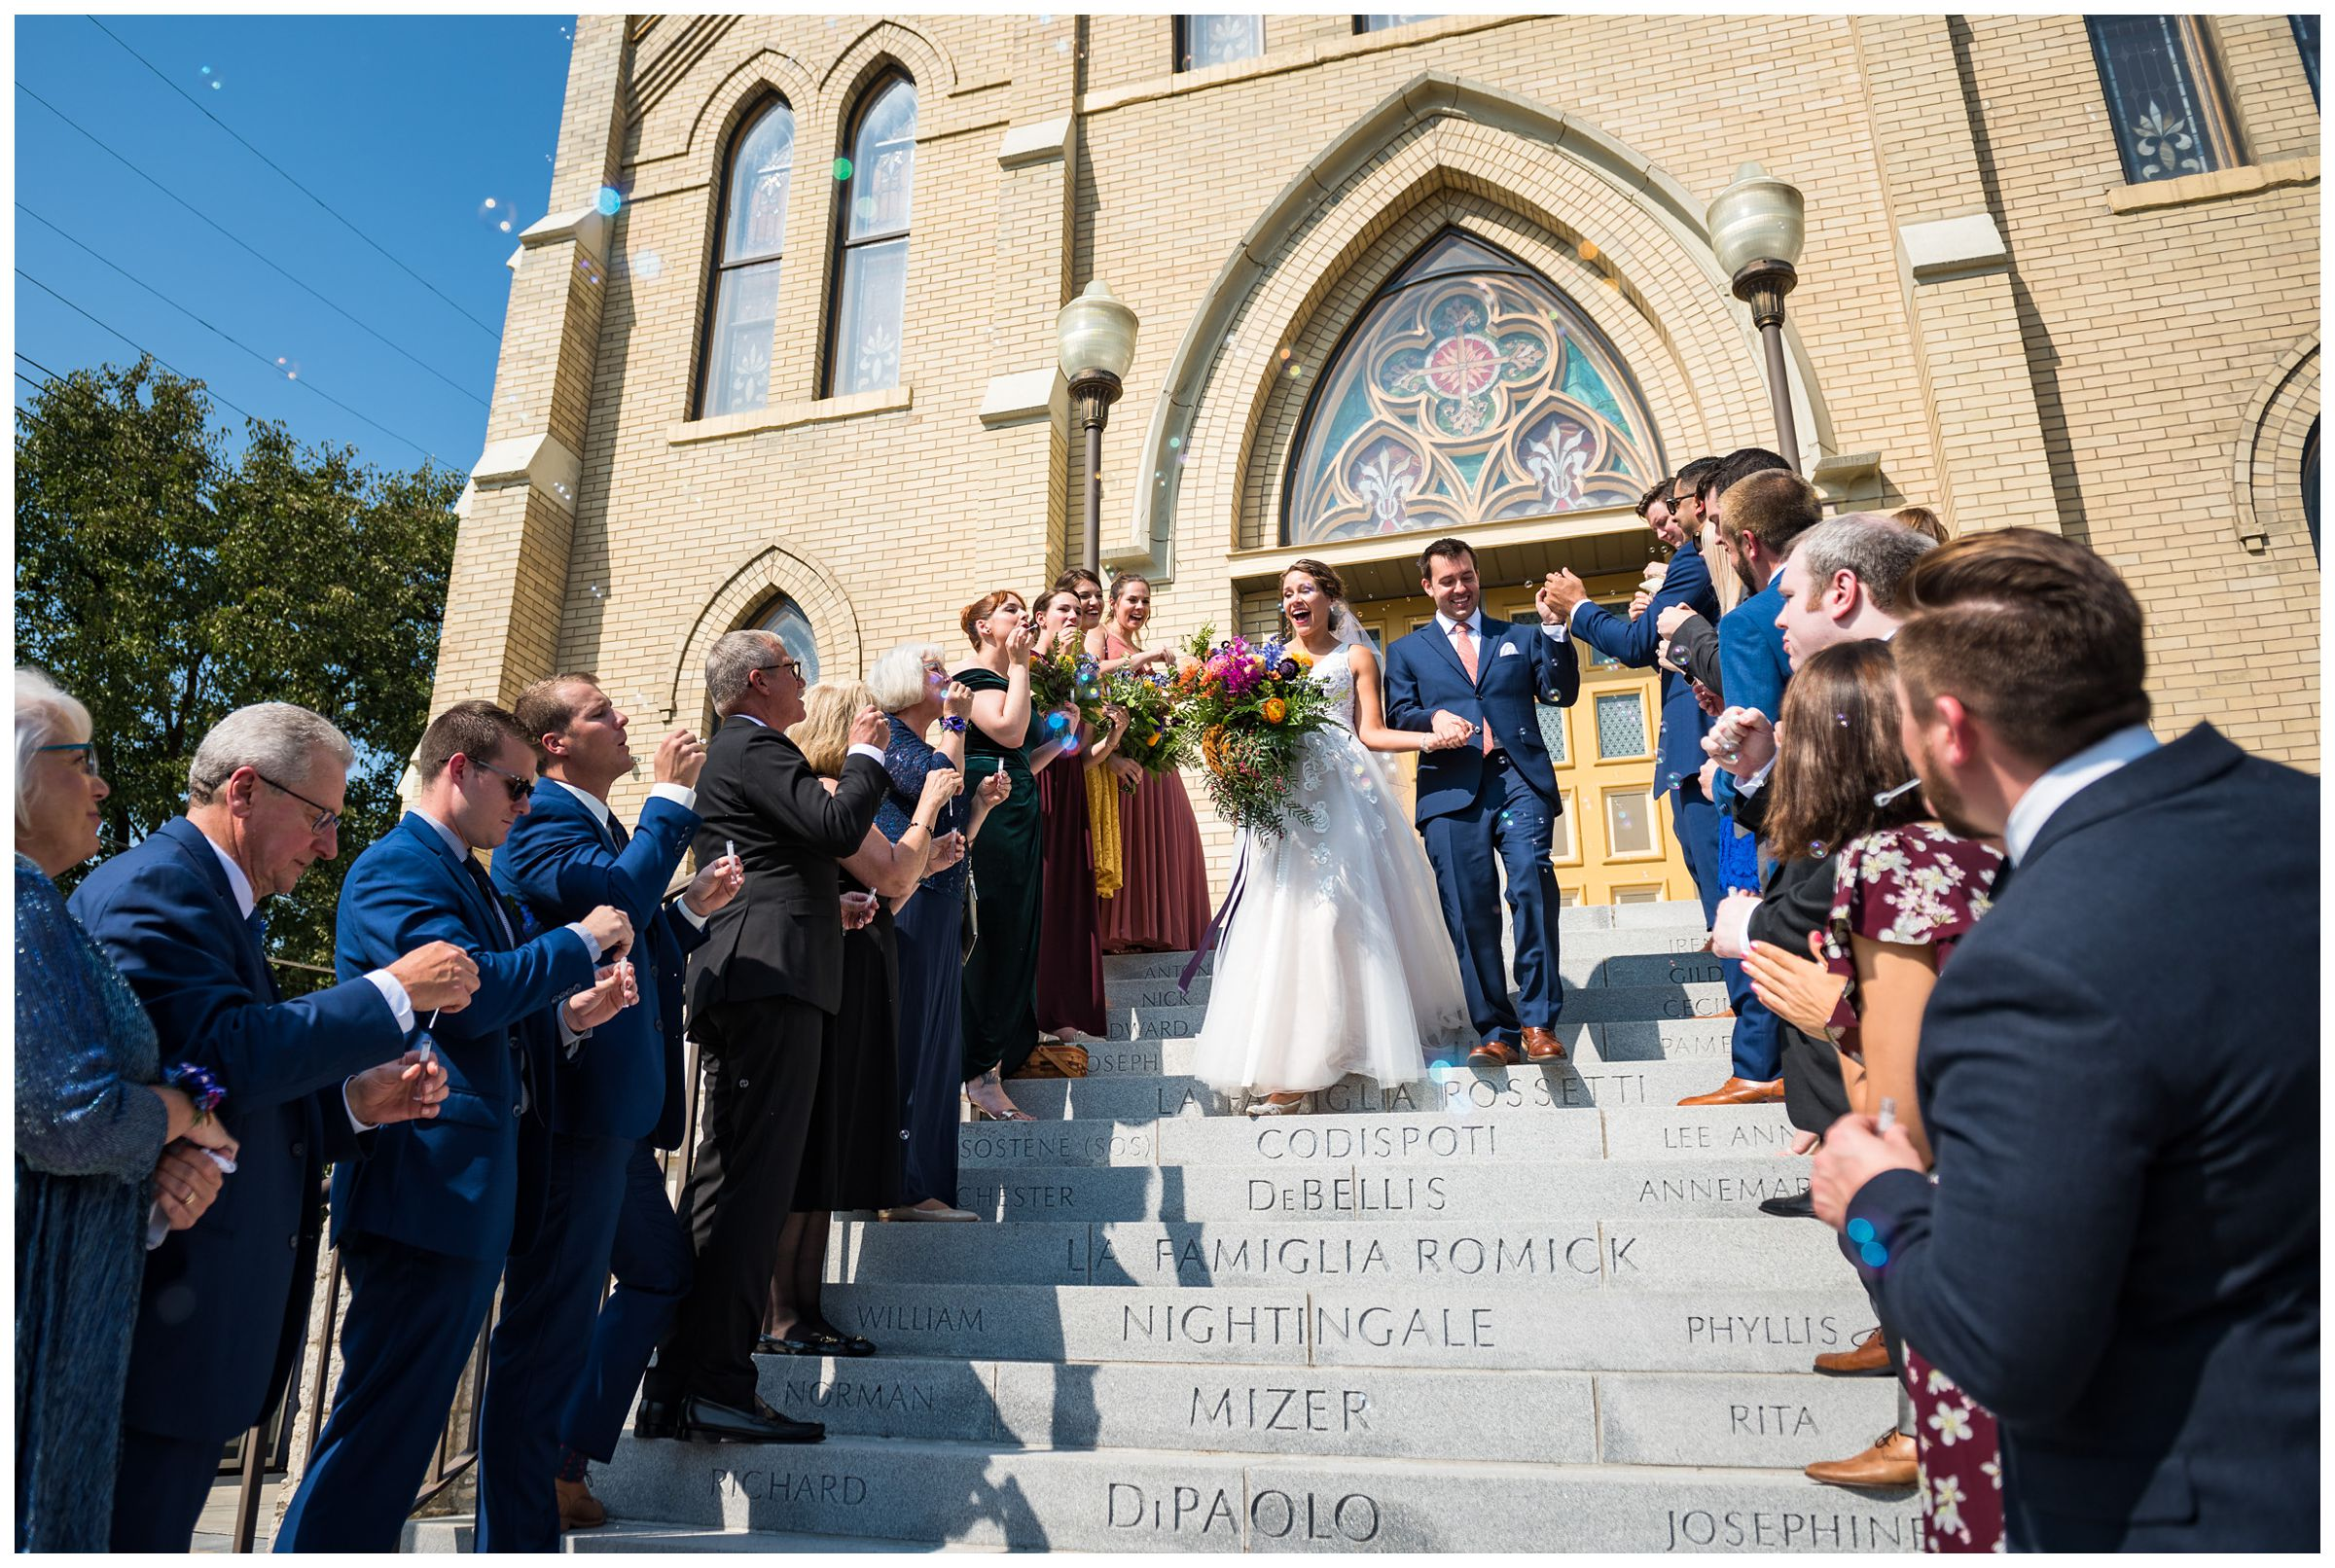 bubble exit on stairs after wedding ceremony at St. John the Baptist Catholic Church in downtown Columbus, Ohio